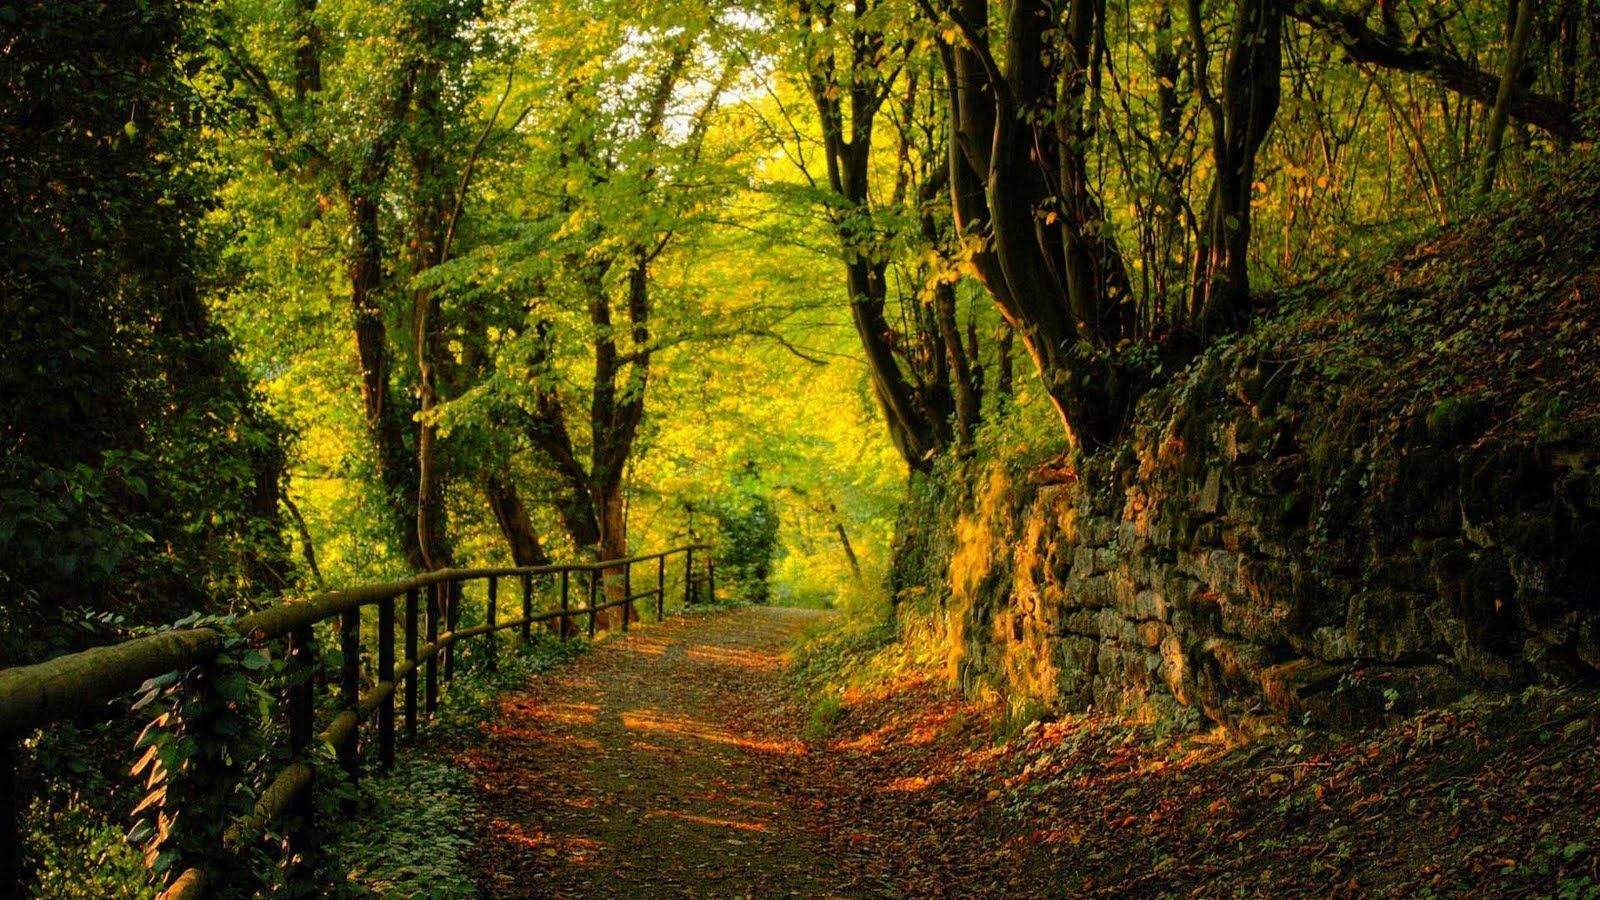 Fotos Paisaje Windows Buscar Con Google Scenic Wallpaper Forest Road Forest View